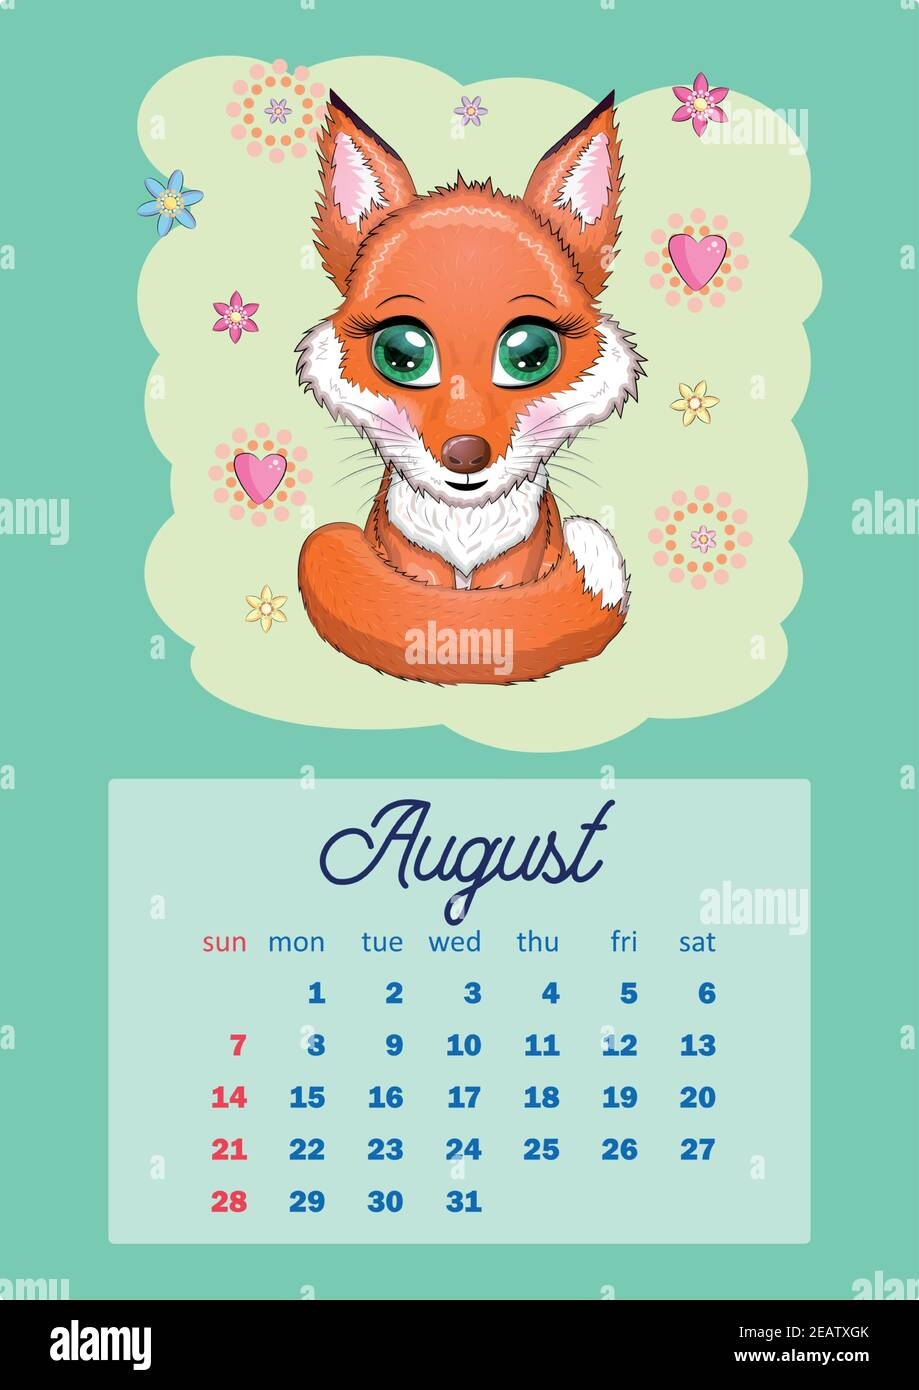 Cat Calendar 2022.Calendar 2022 With Cute Cardboard Animals For Every Month Tiger Snow Leopard Red Panda Cat Hippo Owl Lion Hare Fox Hamster Cow Vertical Ca Stock Vector Image Art Alamy